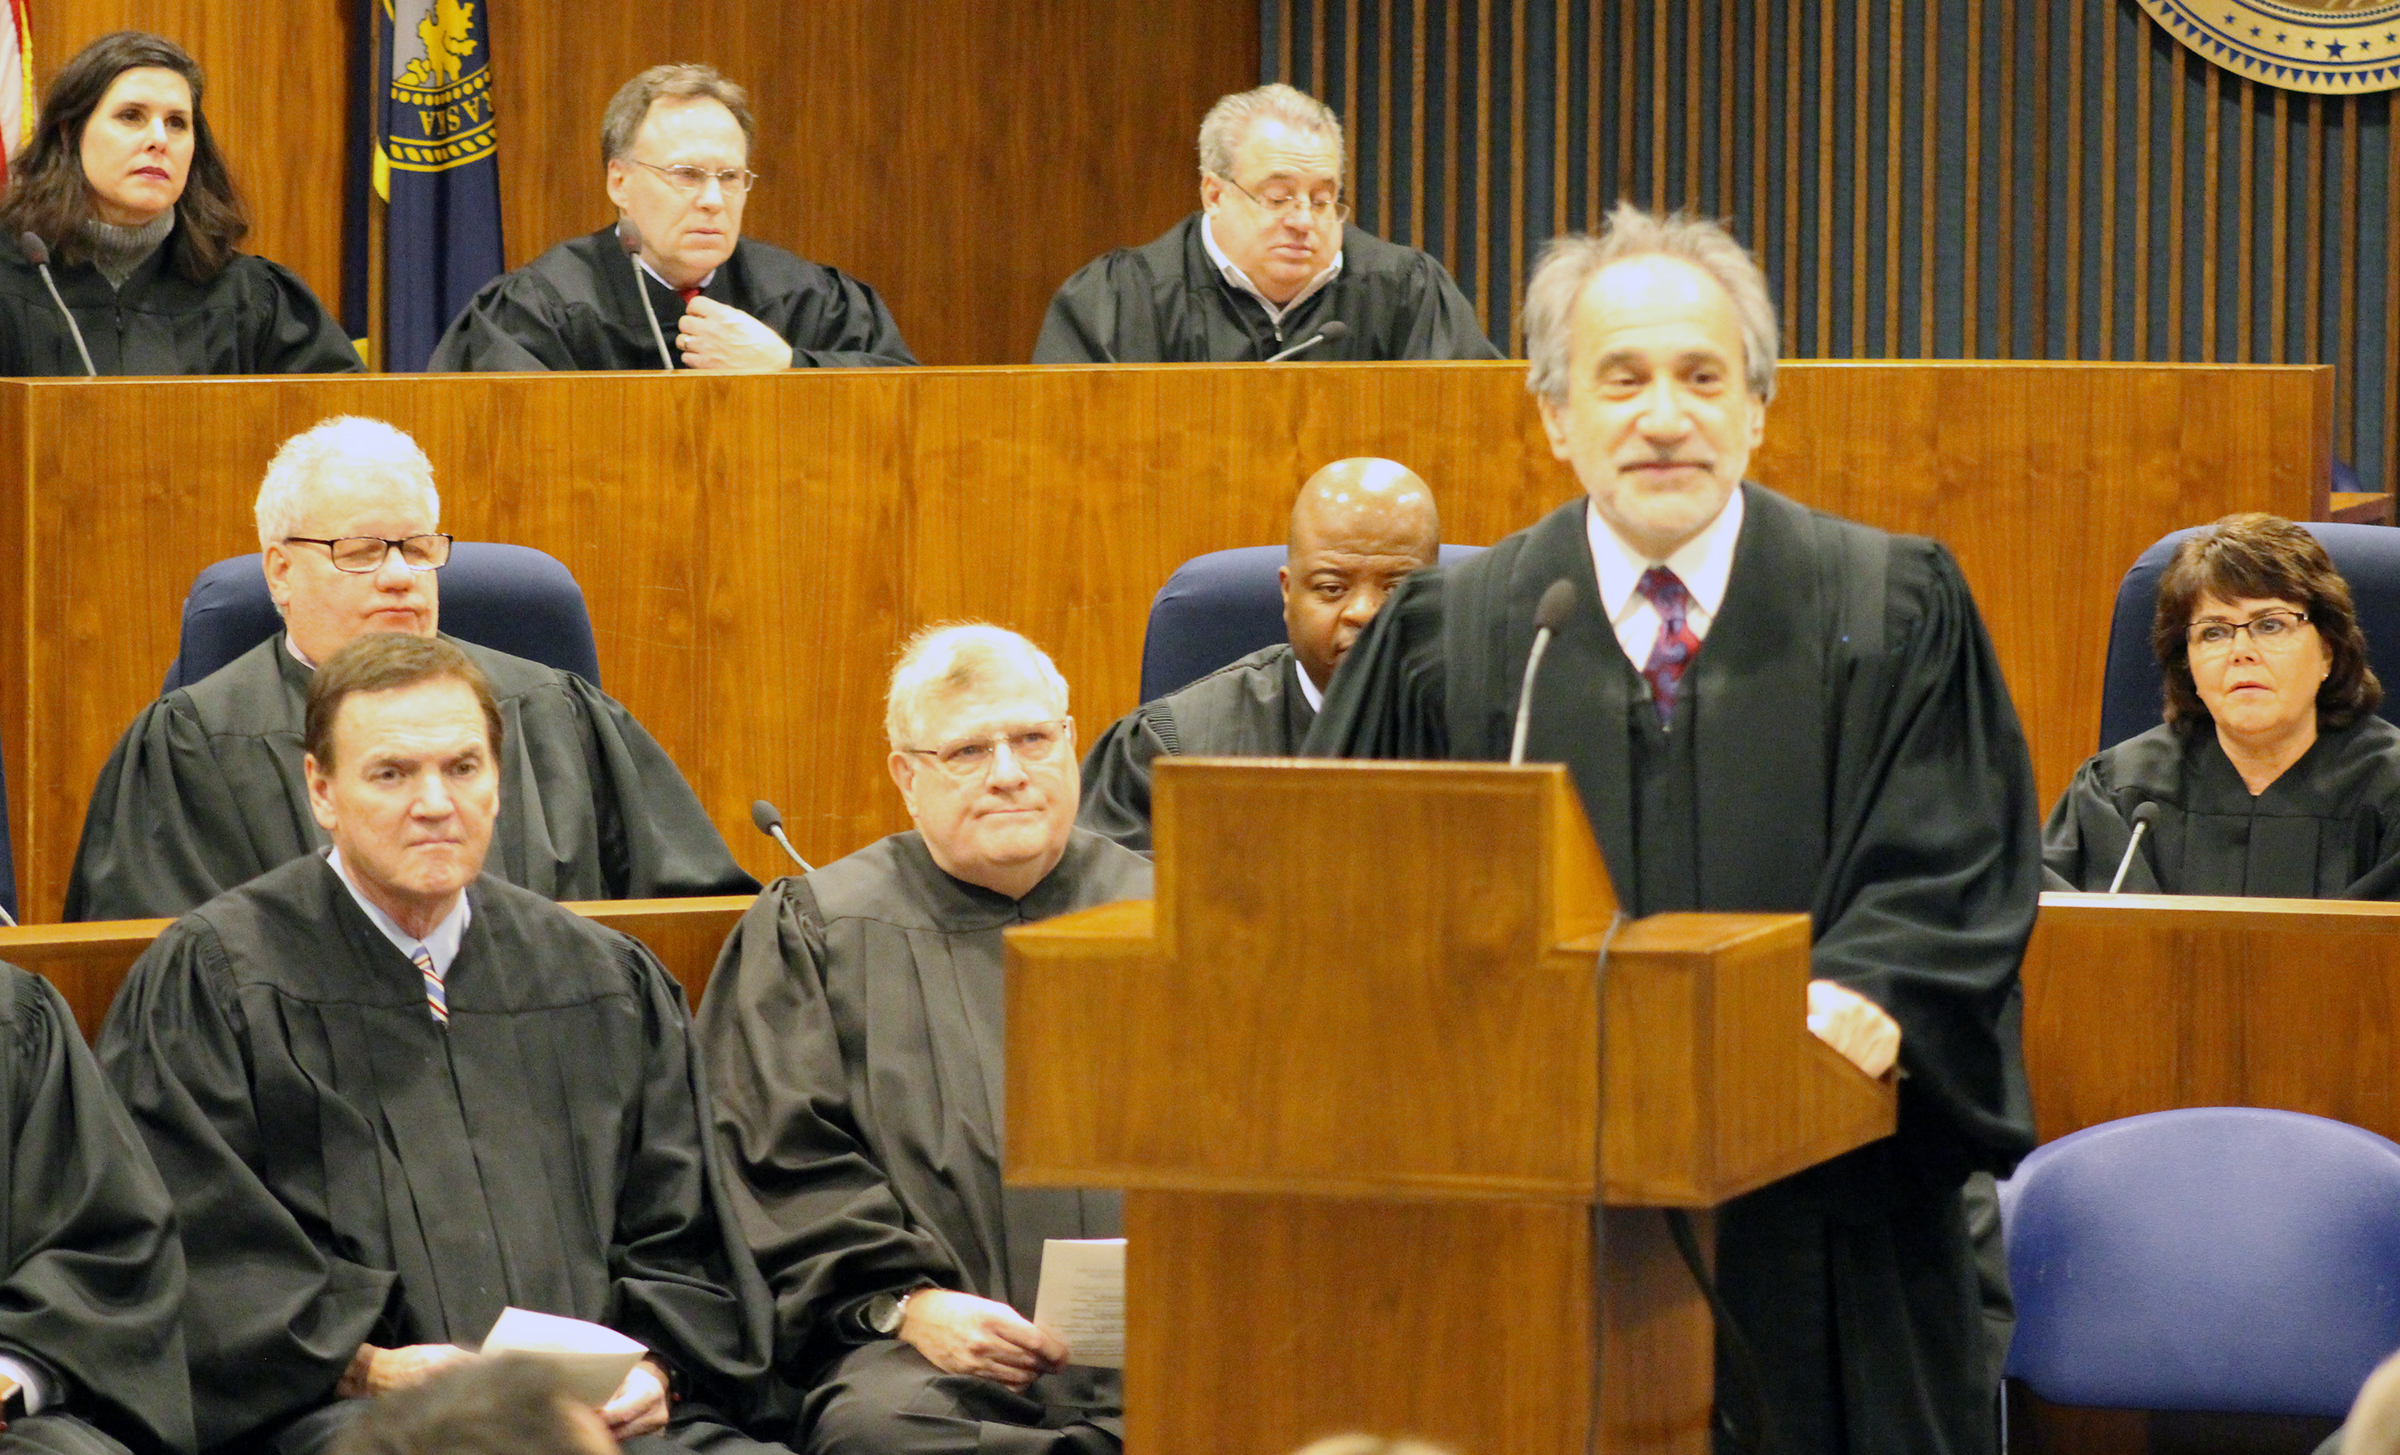 Judge Lawrence D. Gendler delivers remarks during an investiture ceremony in the Legislative Chambers of the Omaha-Douglas County Civic Center on Friday, Jan. 3, 2020. (Photo by Scott Stewart)